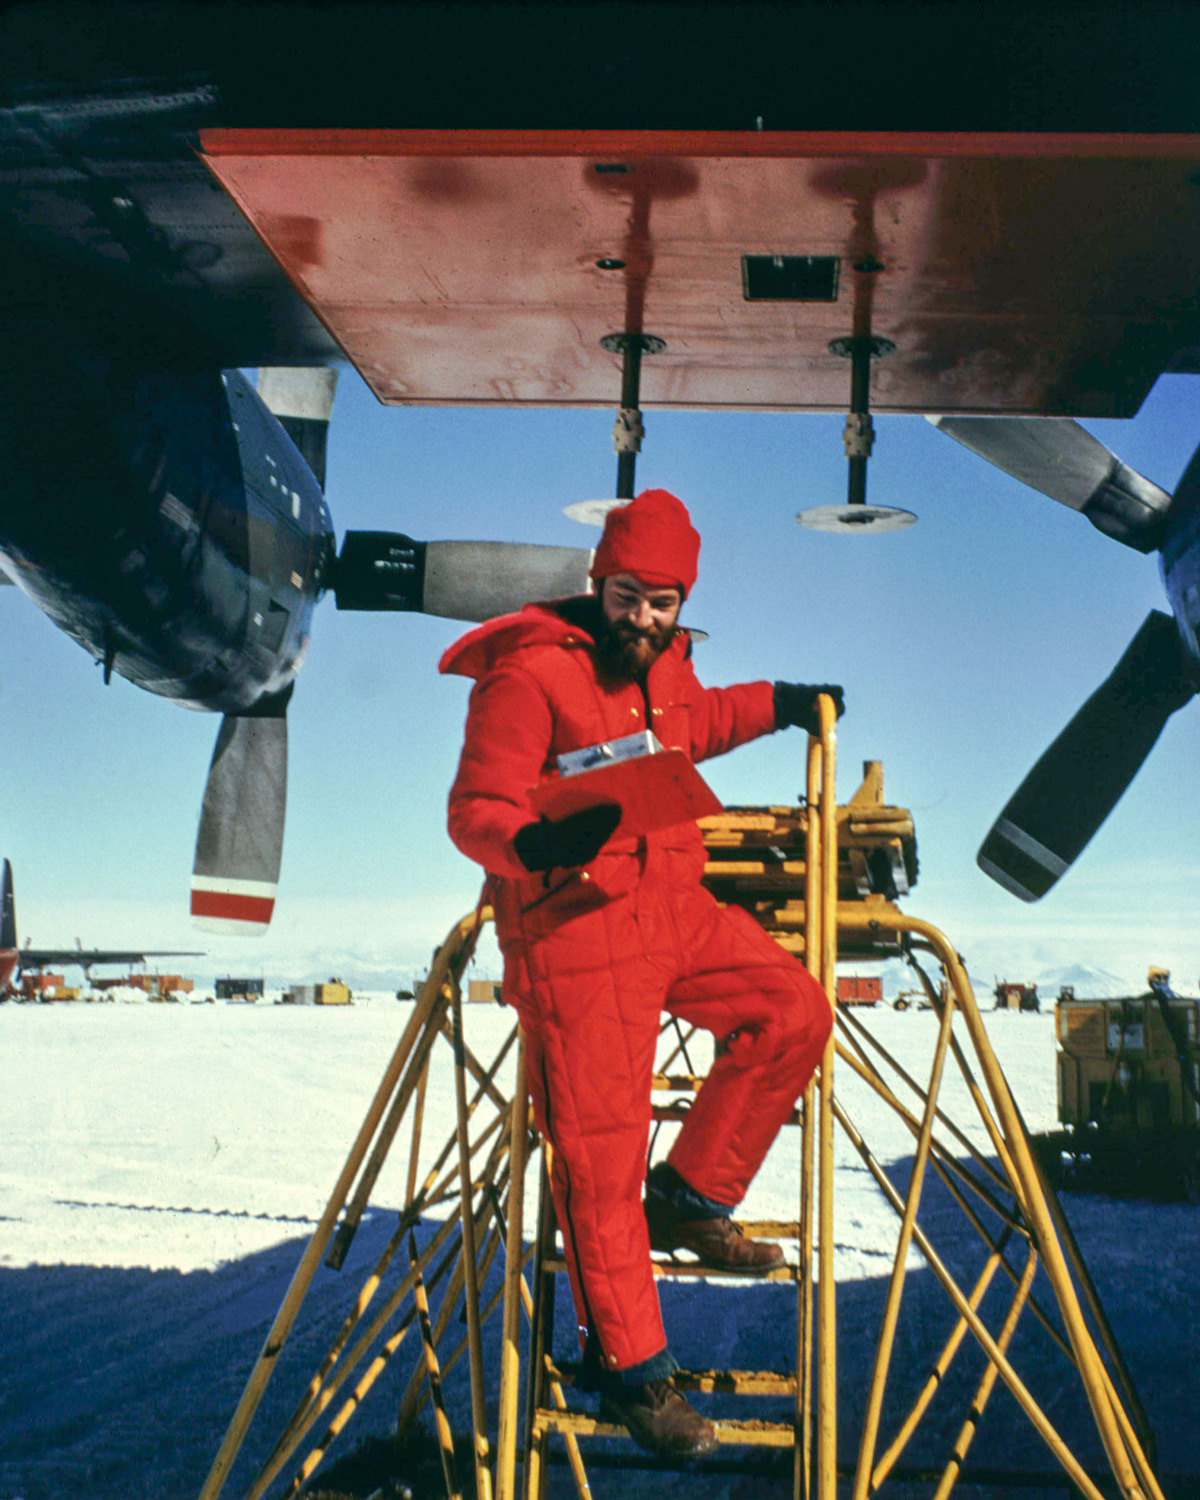 Nils Sko undertaking maintenance on a 300MHz radar antenna on a C-130 plane at McMurdo Sound in Antarctica.